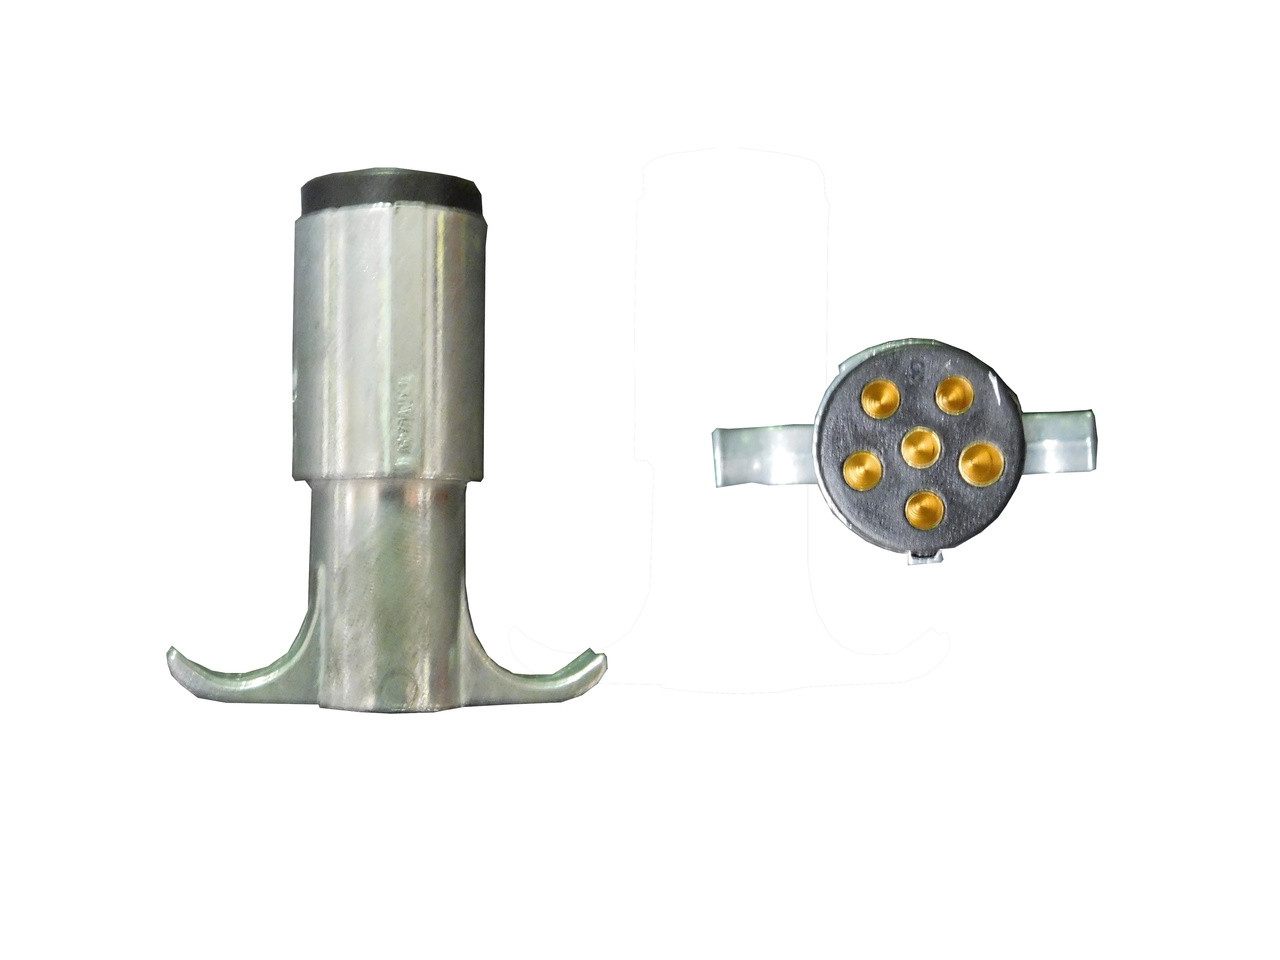 medium resolution of clearance 6 pin round trailer connector male price 8 99 image 1